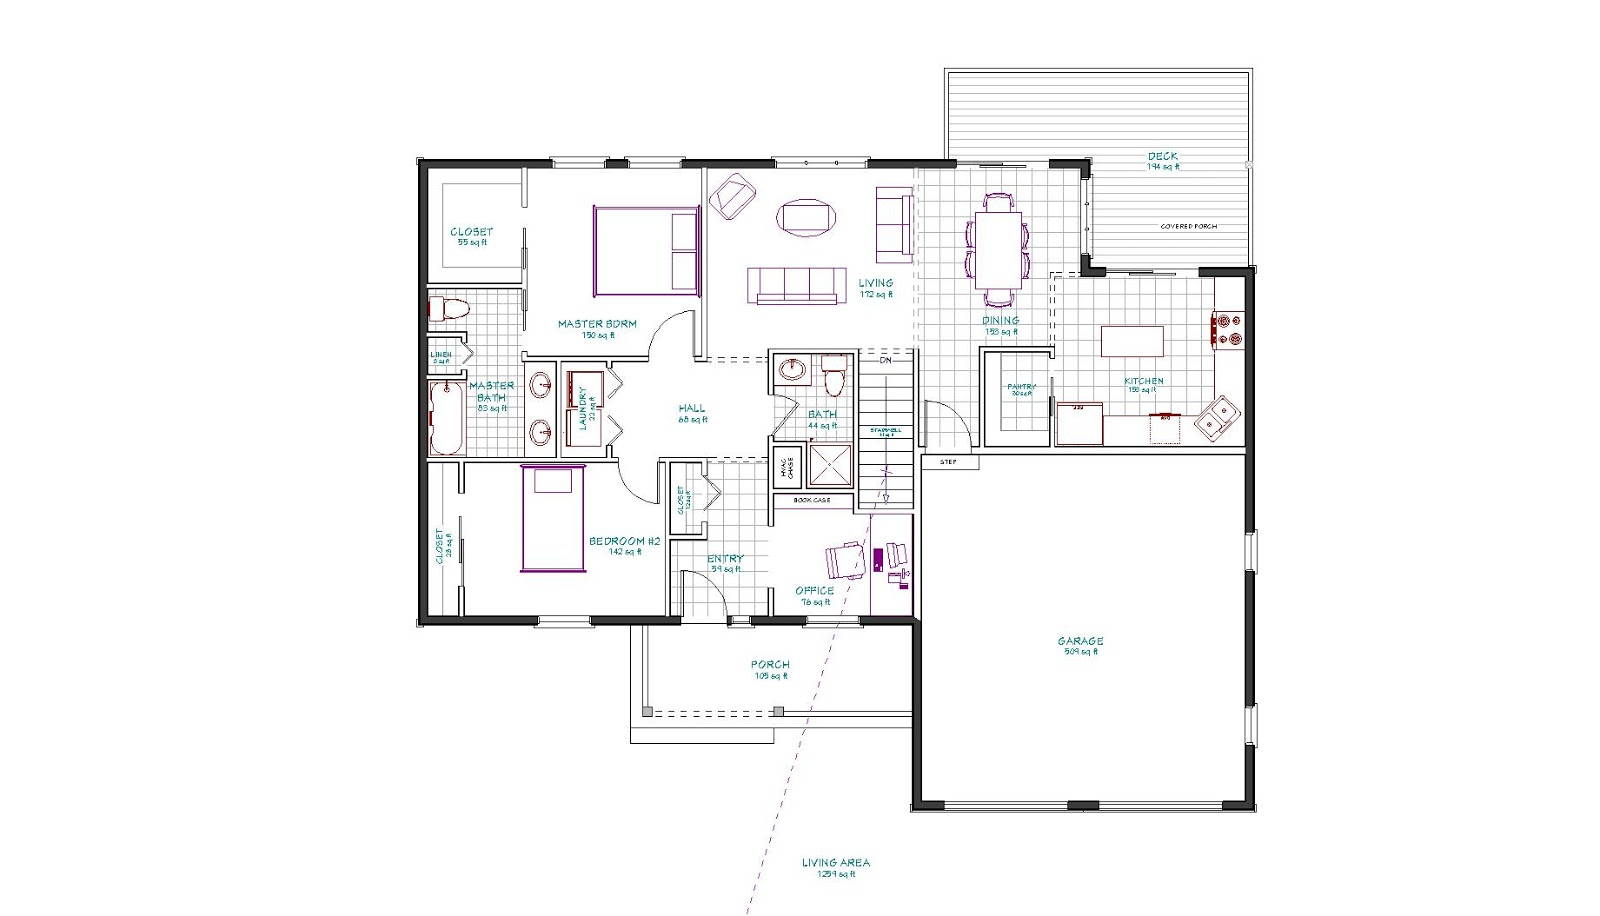 B01543547cde0171 Free House Floor Plans Free Small House Plans Pdf further Project in addition Plan Ranch Floor Plans House 2 besides Elegant And Affordable Living Made Possible By Ranch Floor Plans moreover 475411304385808874. on low country house plans